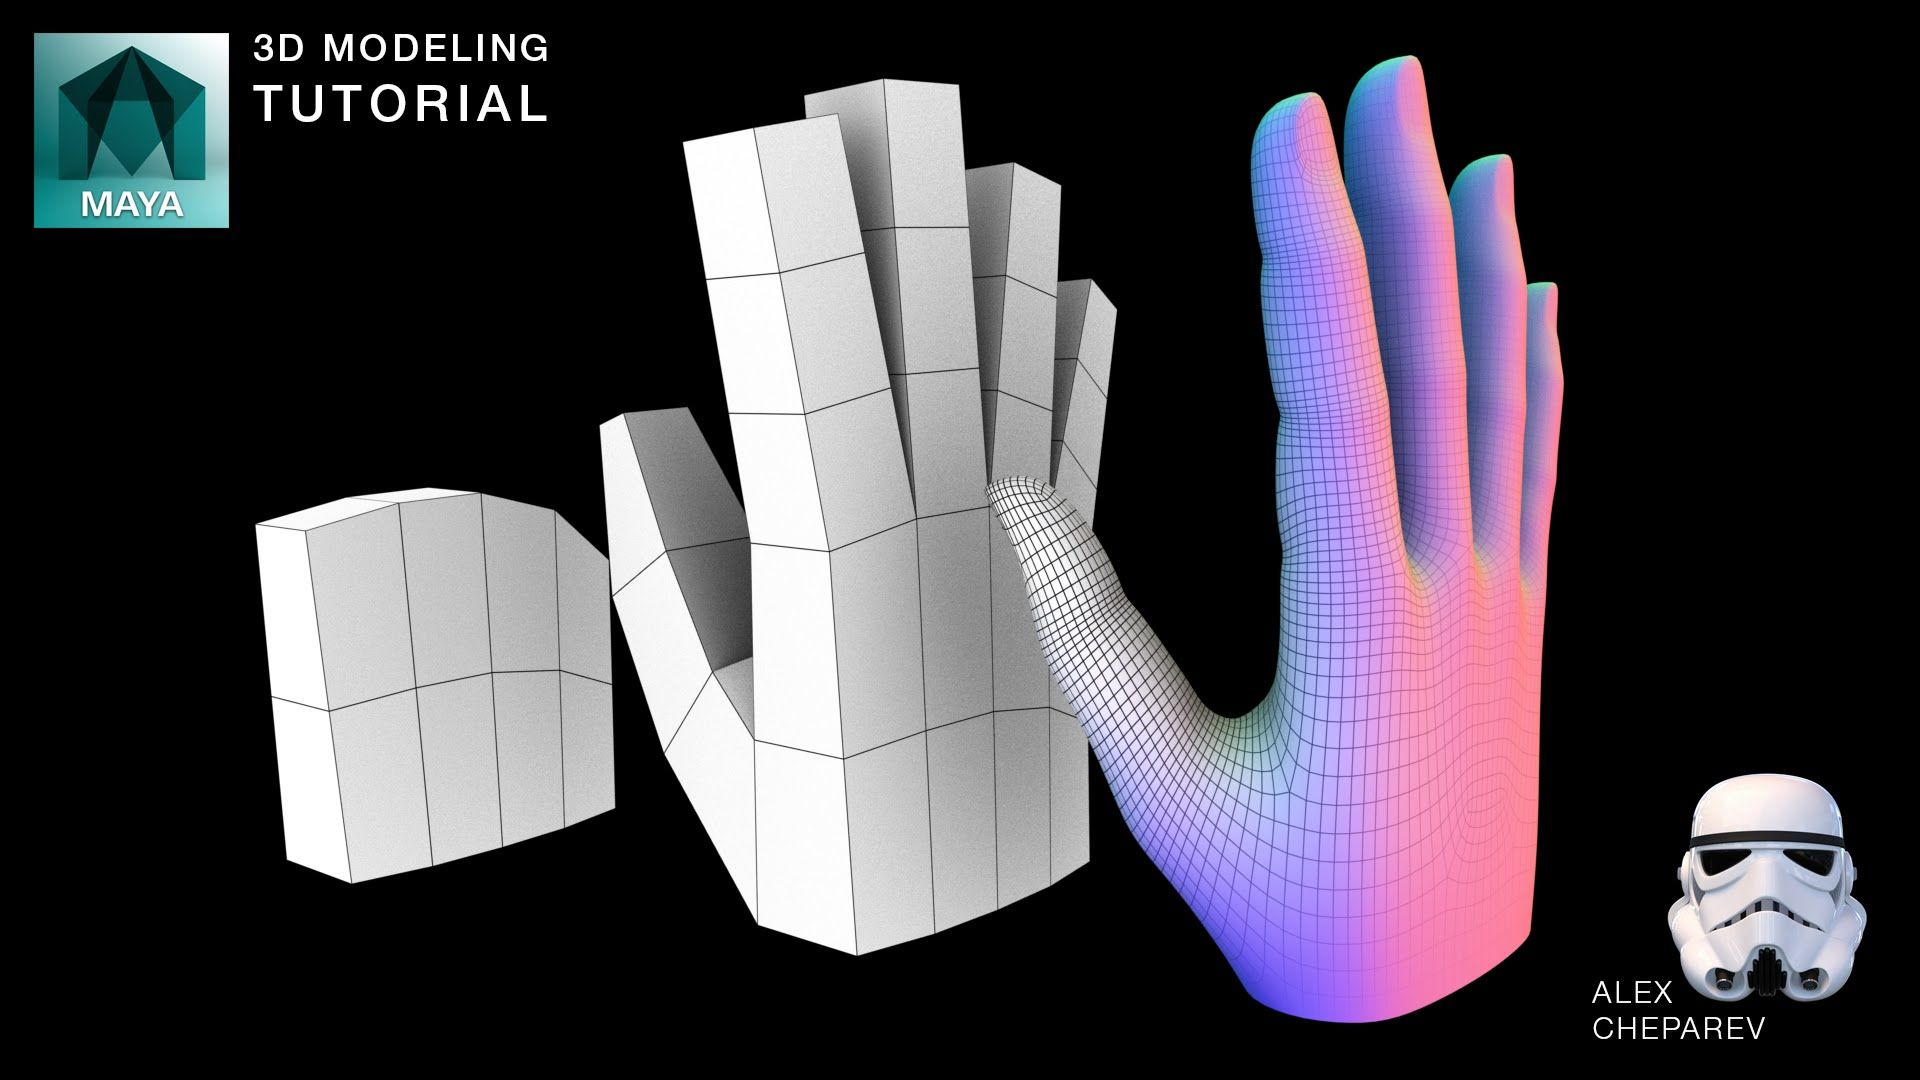 This Is My Very Simple Hand Modeling Workflow Using Just Box Modeling And Hand Model Maya Modeling 3d Modeling Tutorial